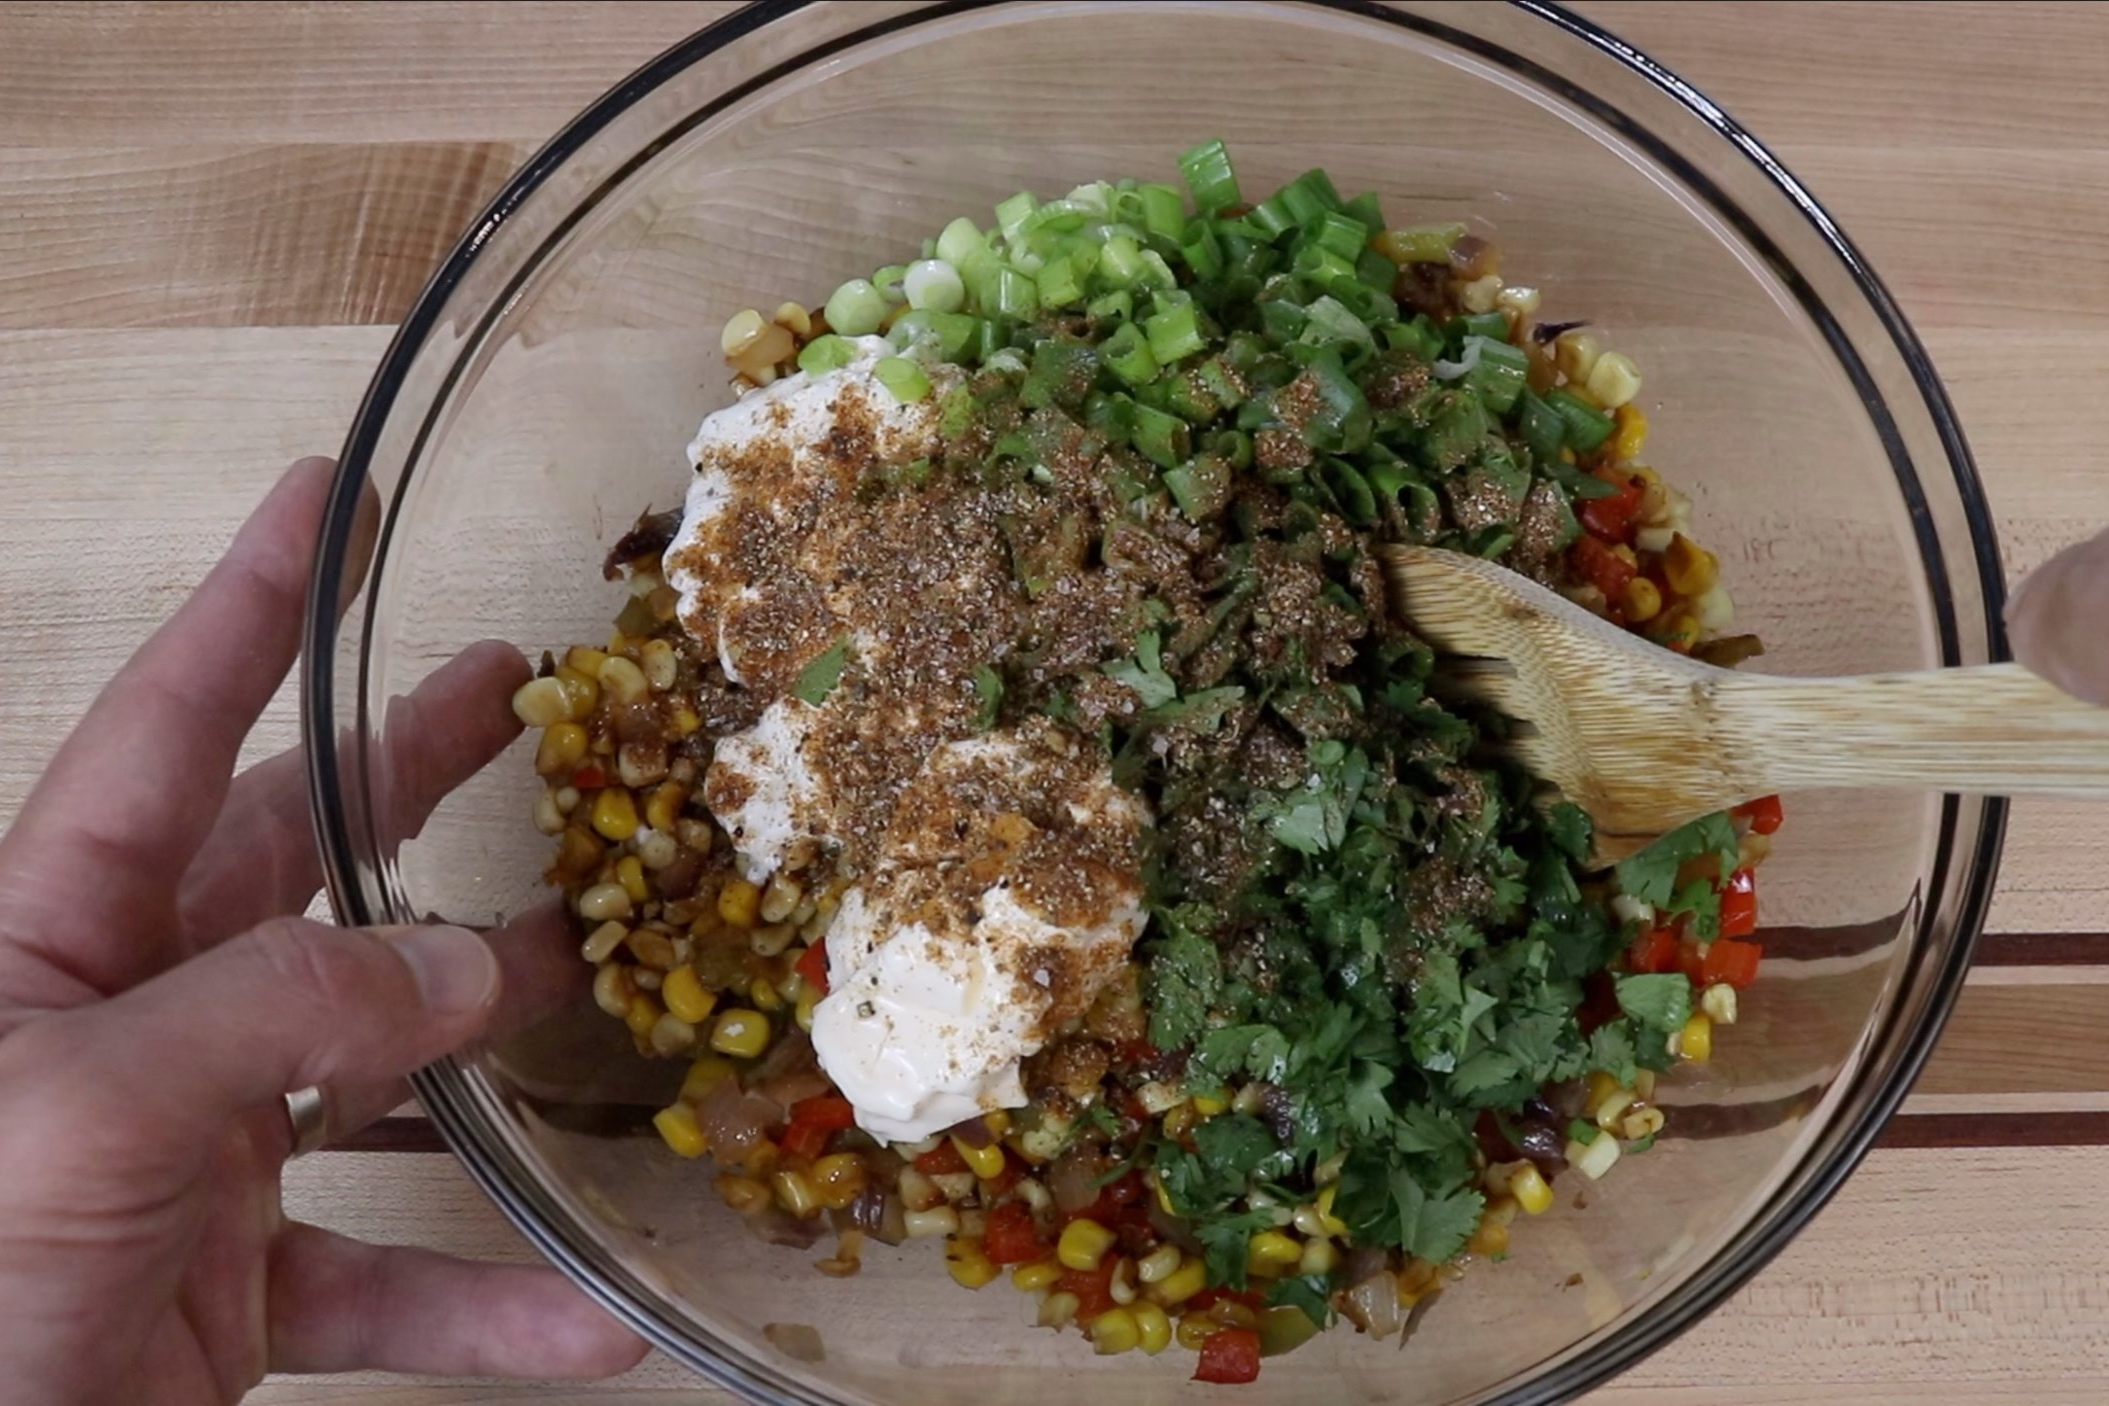 5. In a large bowl, combine the corn mixture, sour cream, mayo, green onions, cilantro, lime juice and southwest seasoning. Stir together until combined. -